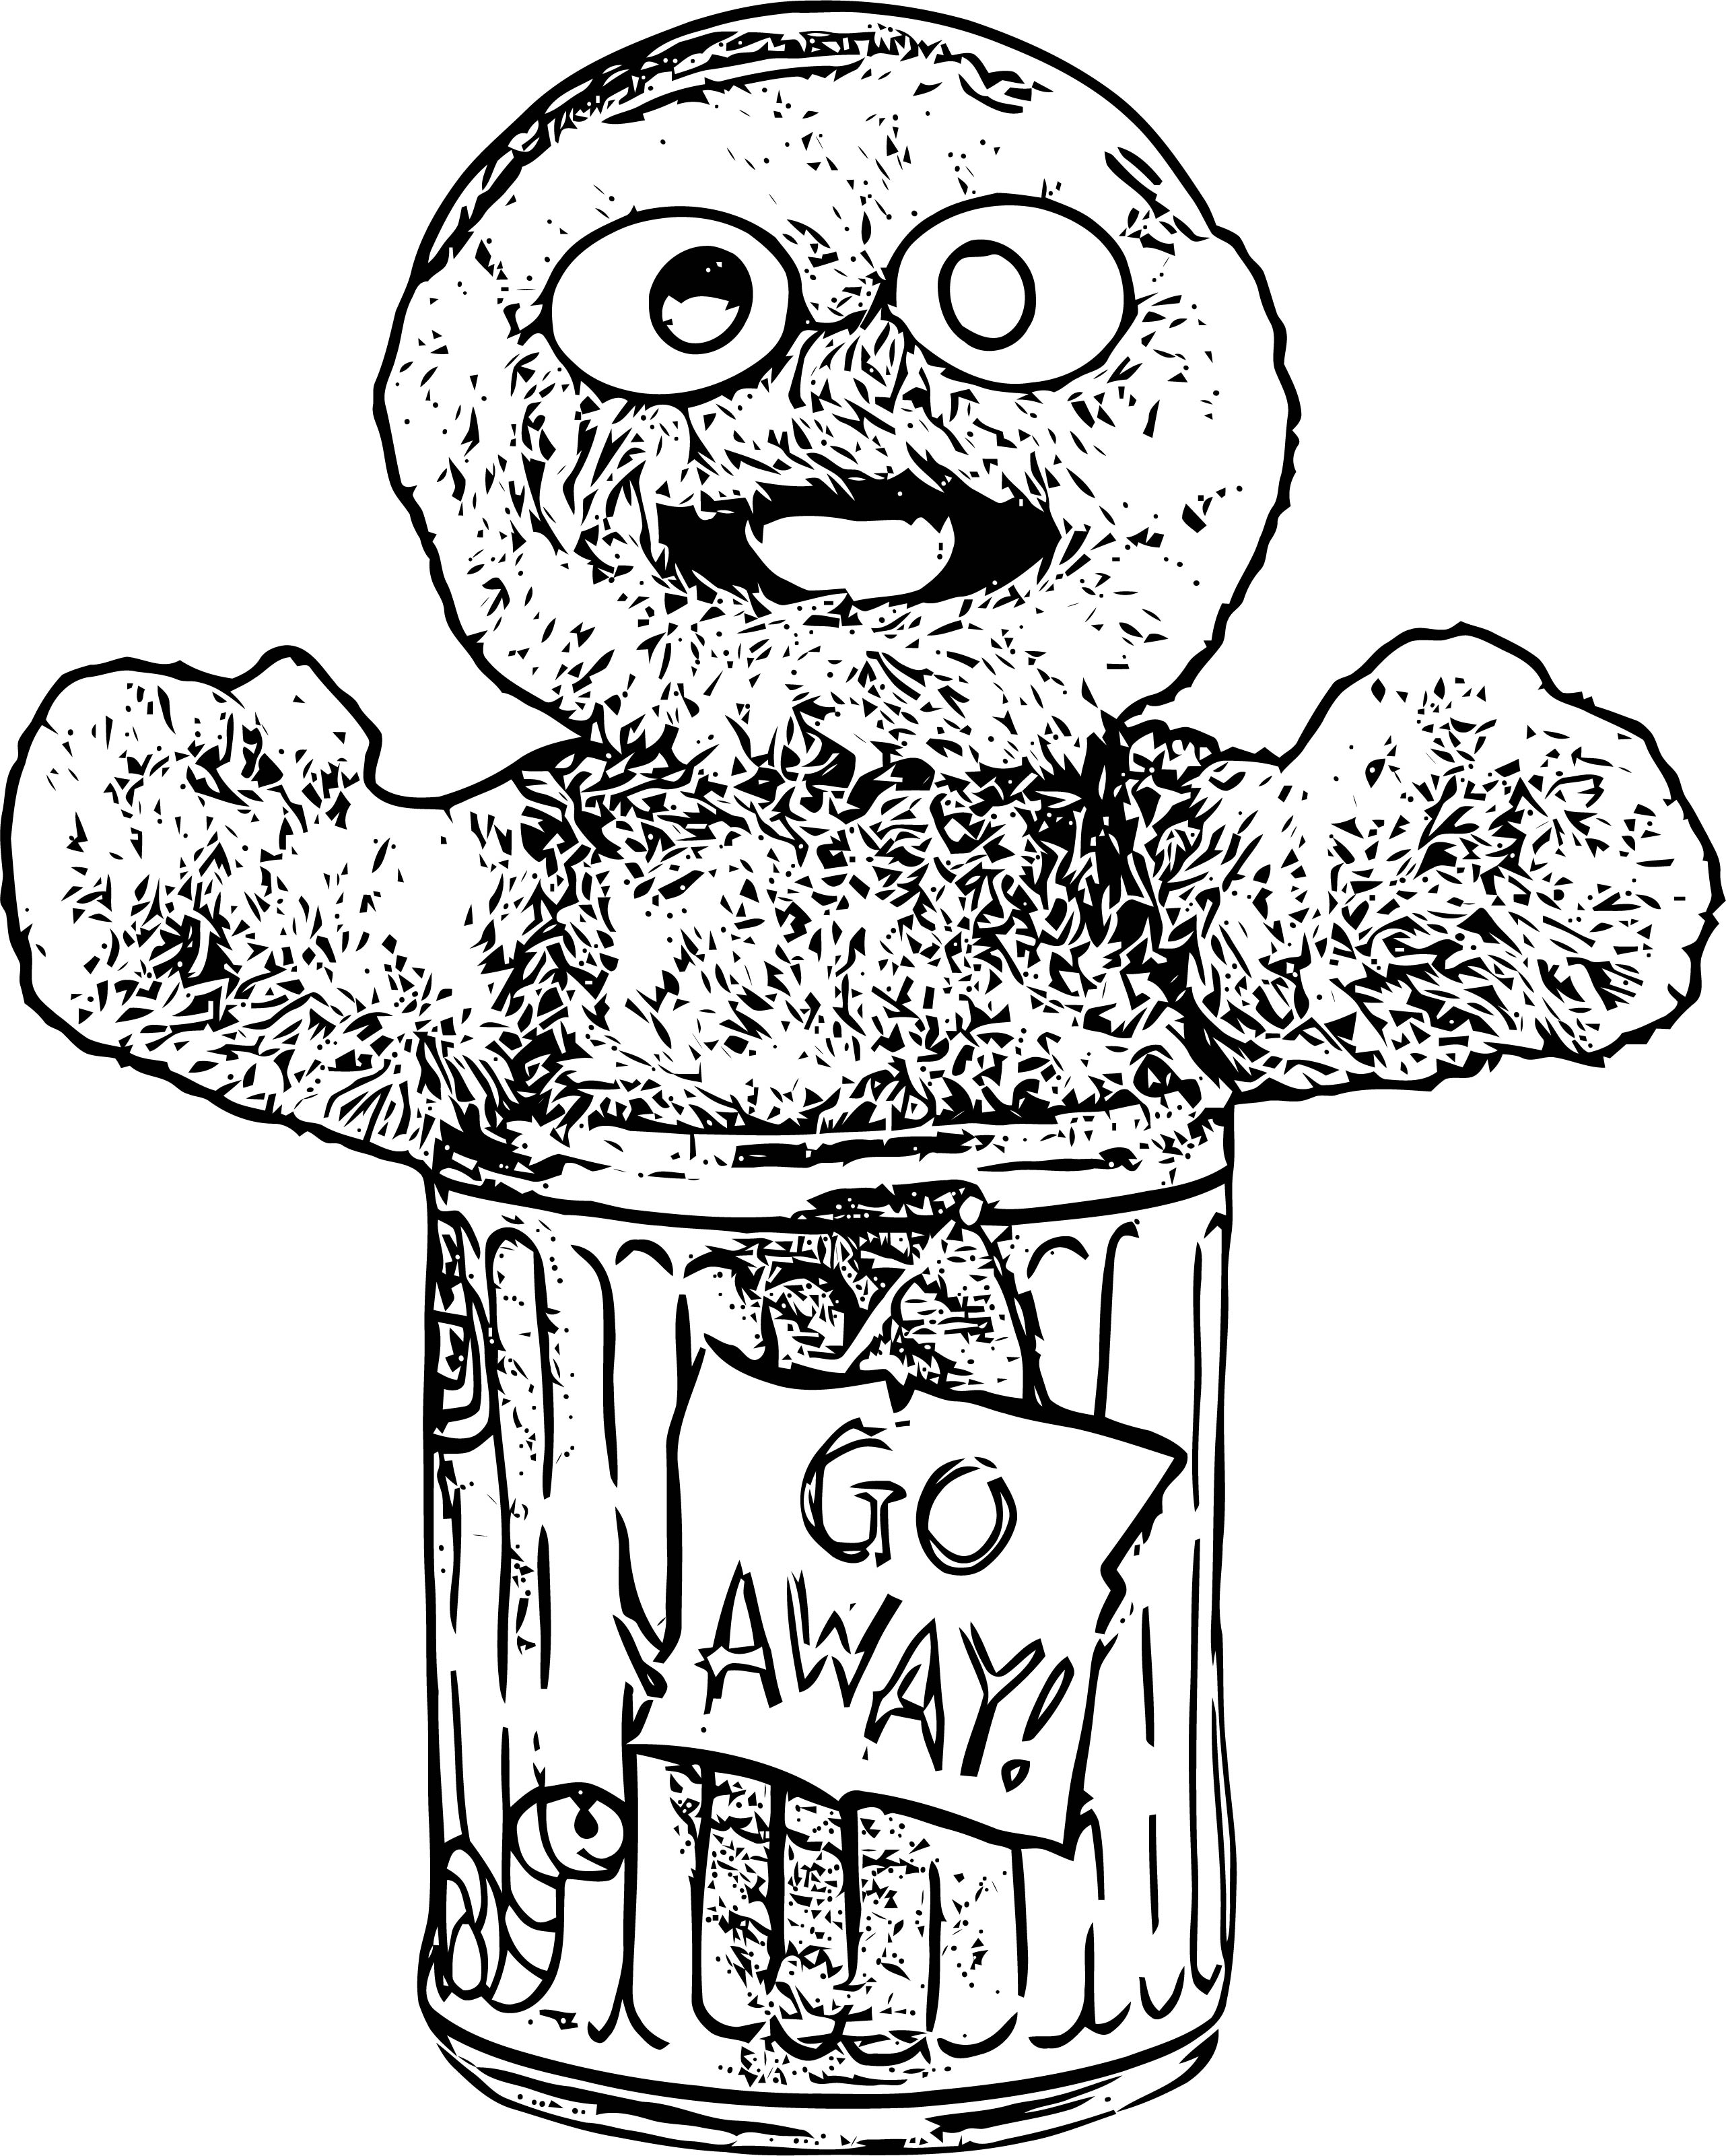 Sesame Street Go Away Trash Sketch Coloring Page